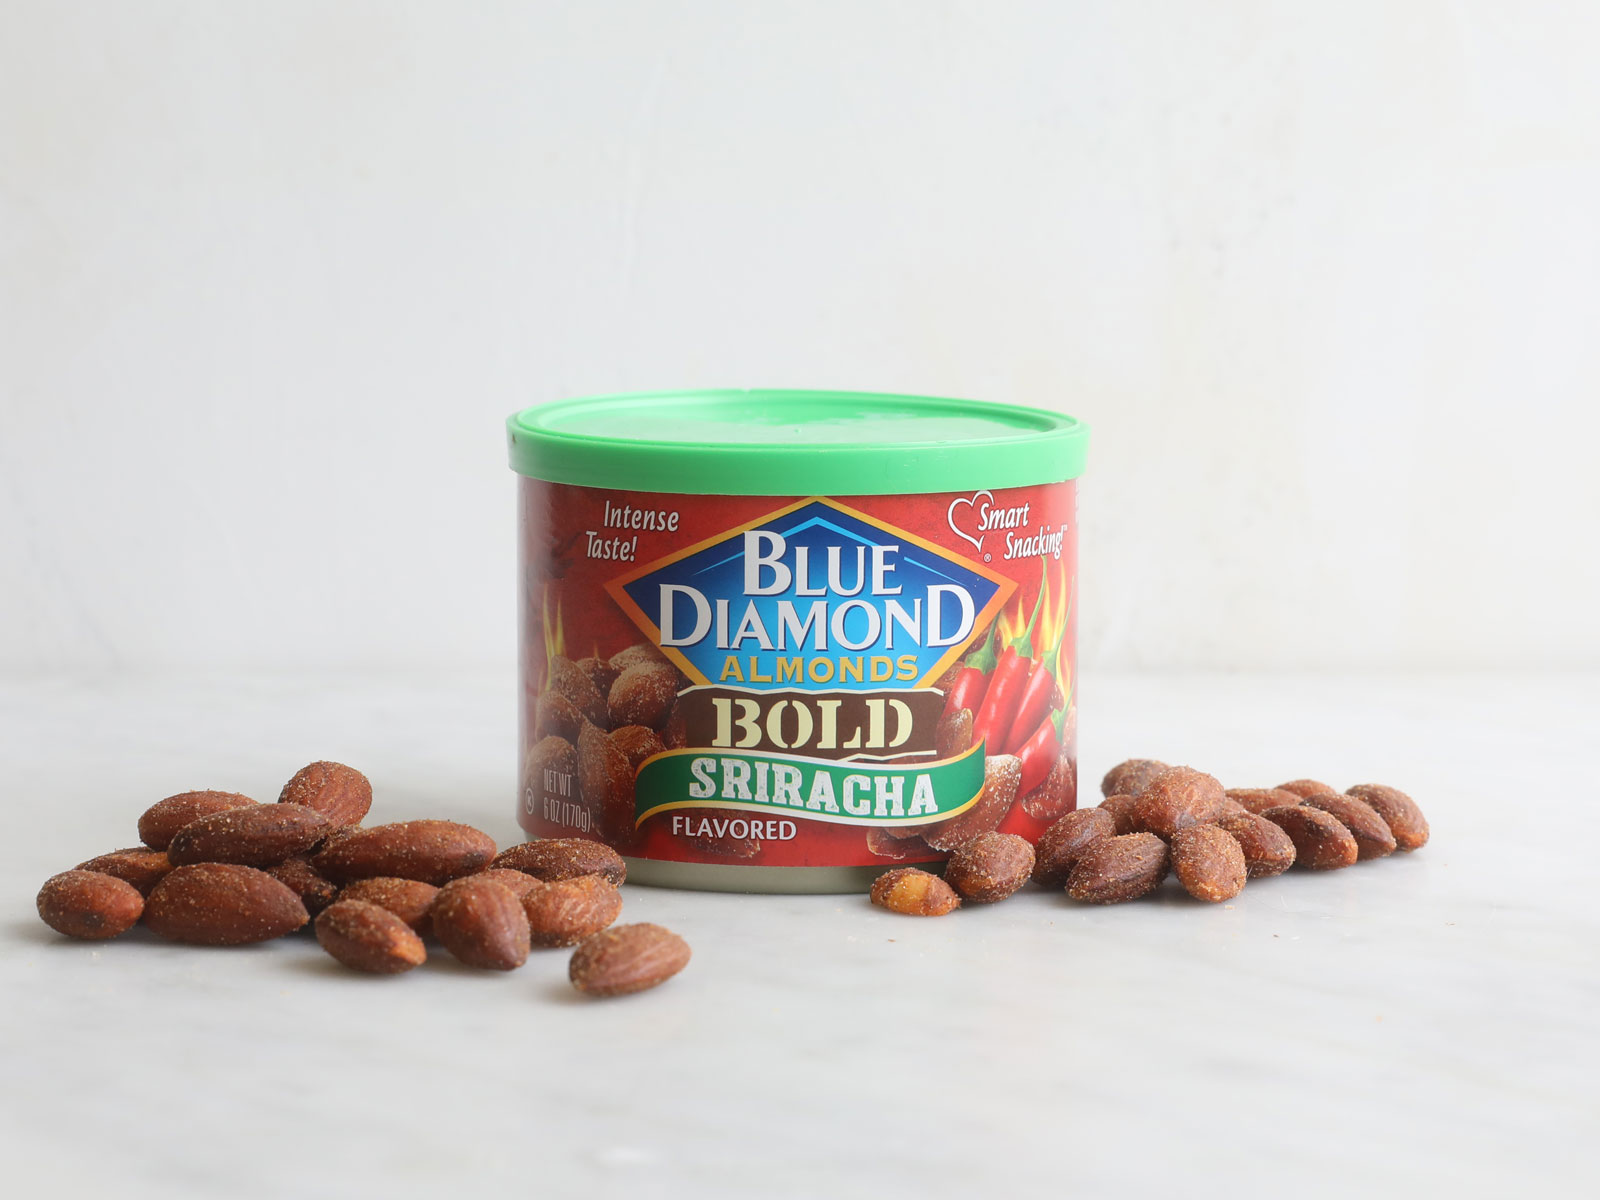 Every Blue Diamond almond flavor, taste-tested and ranked.